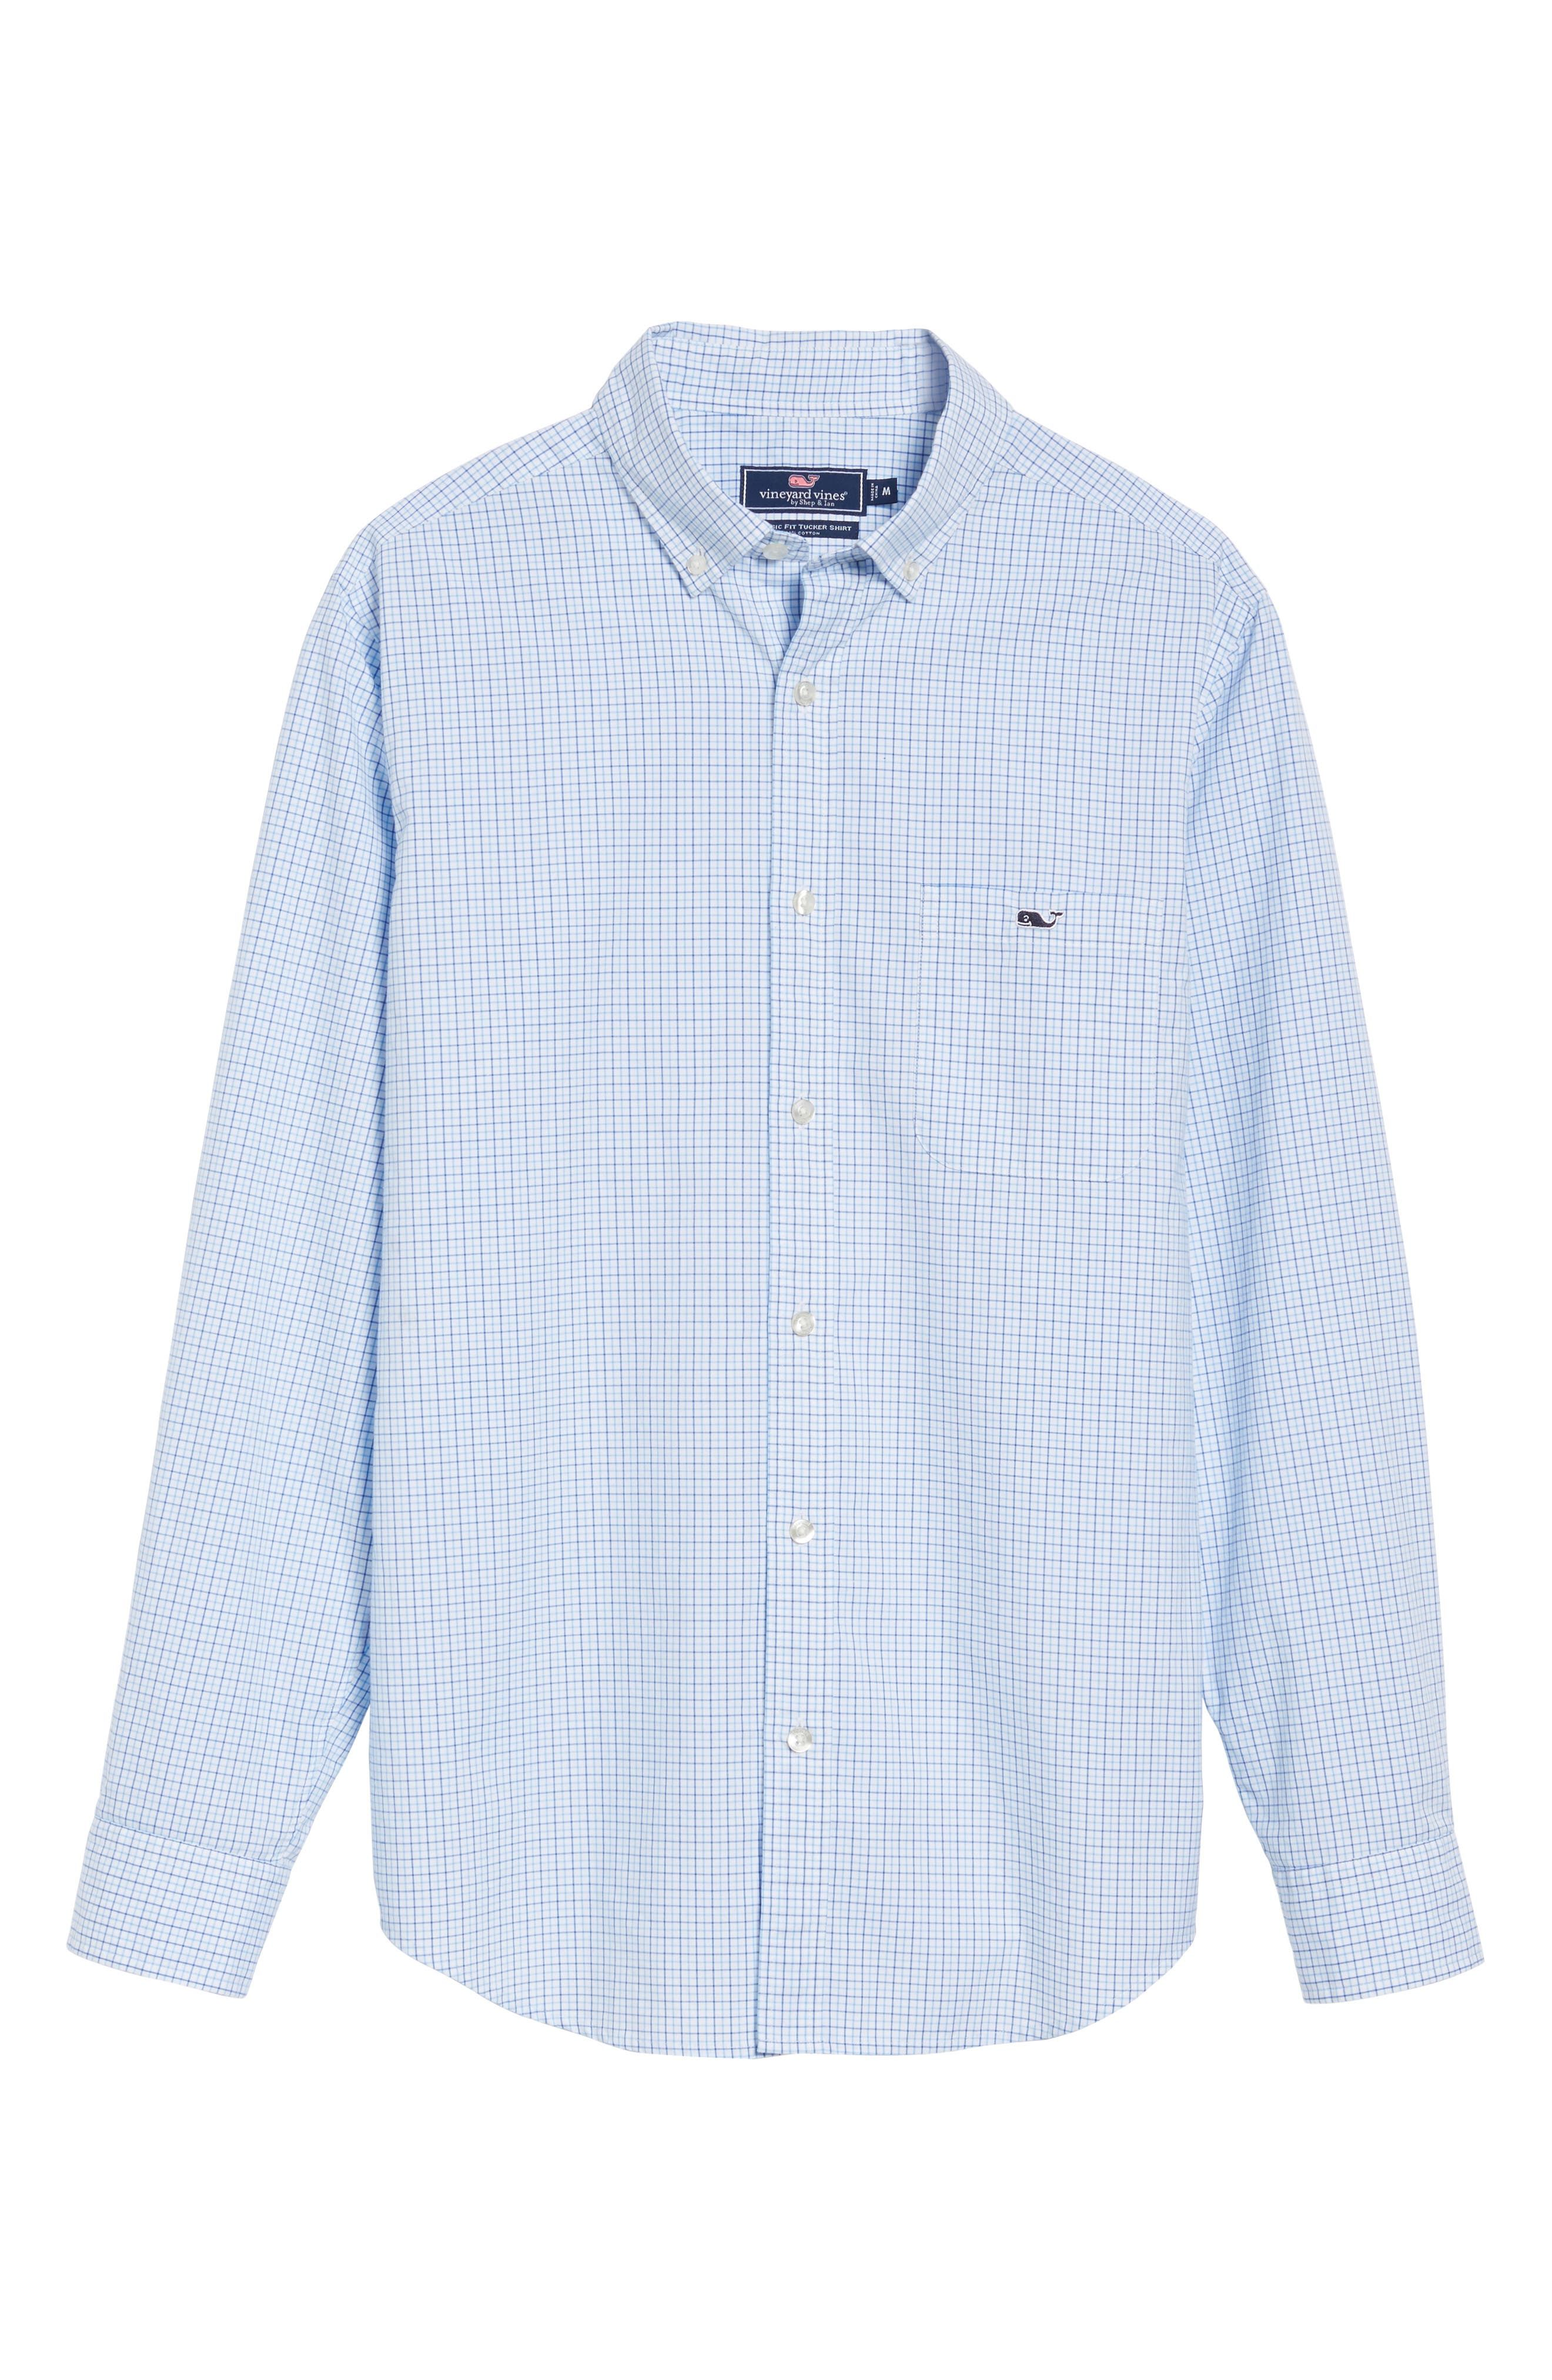 Twin Pond Classic Fit Tattersall Check Sport Shirt,                             Alternate thumbnail 6, color,                             484